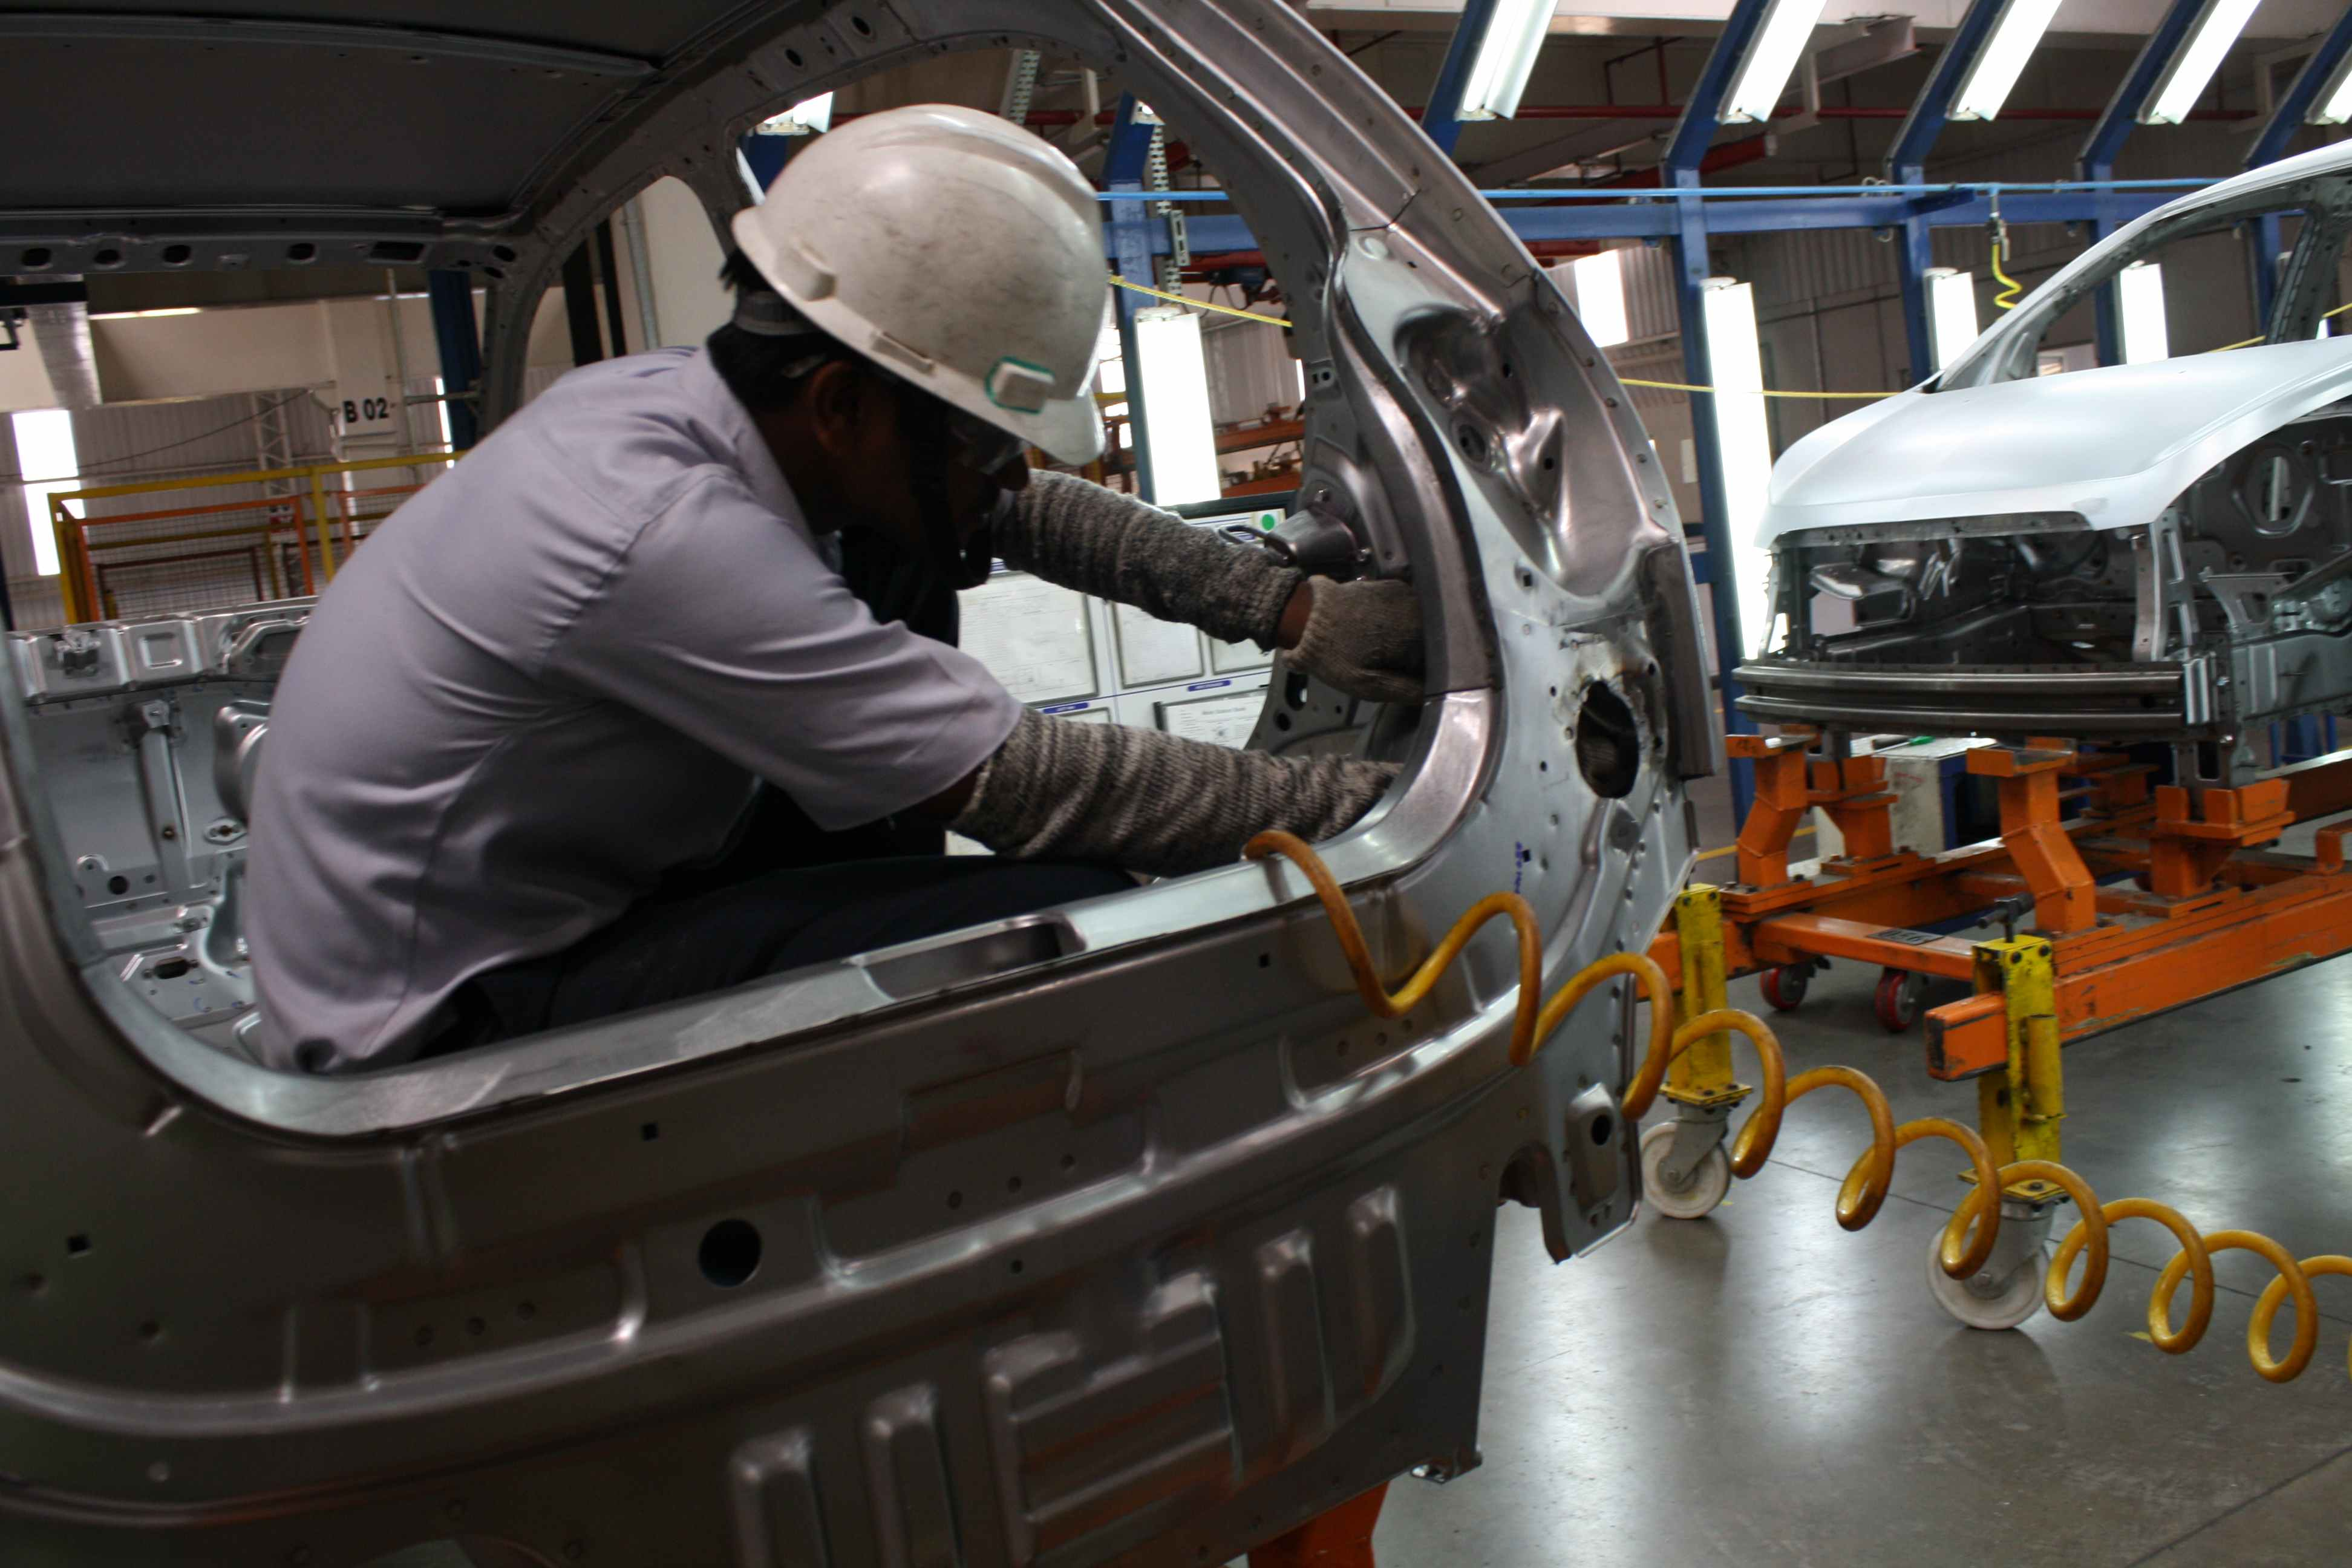 Autoworkers at General Motors India